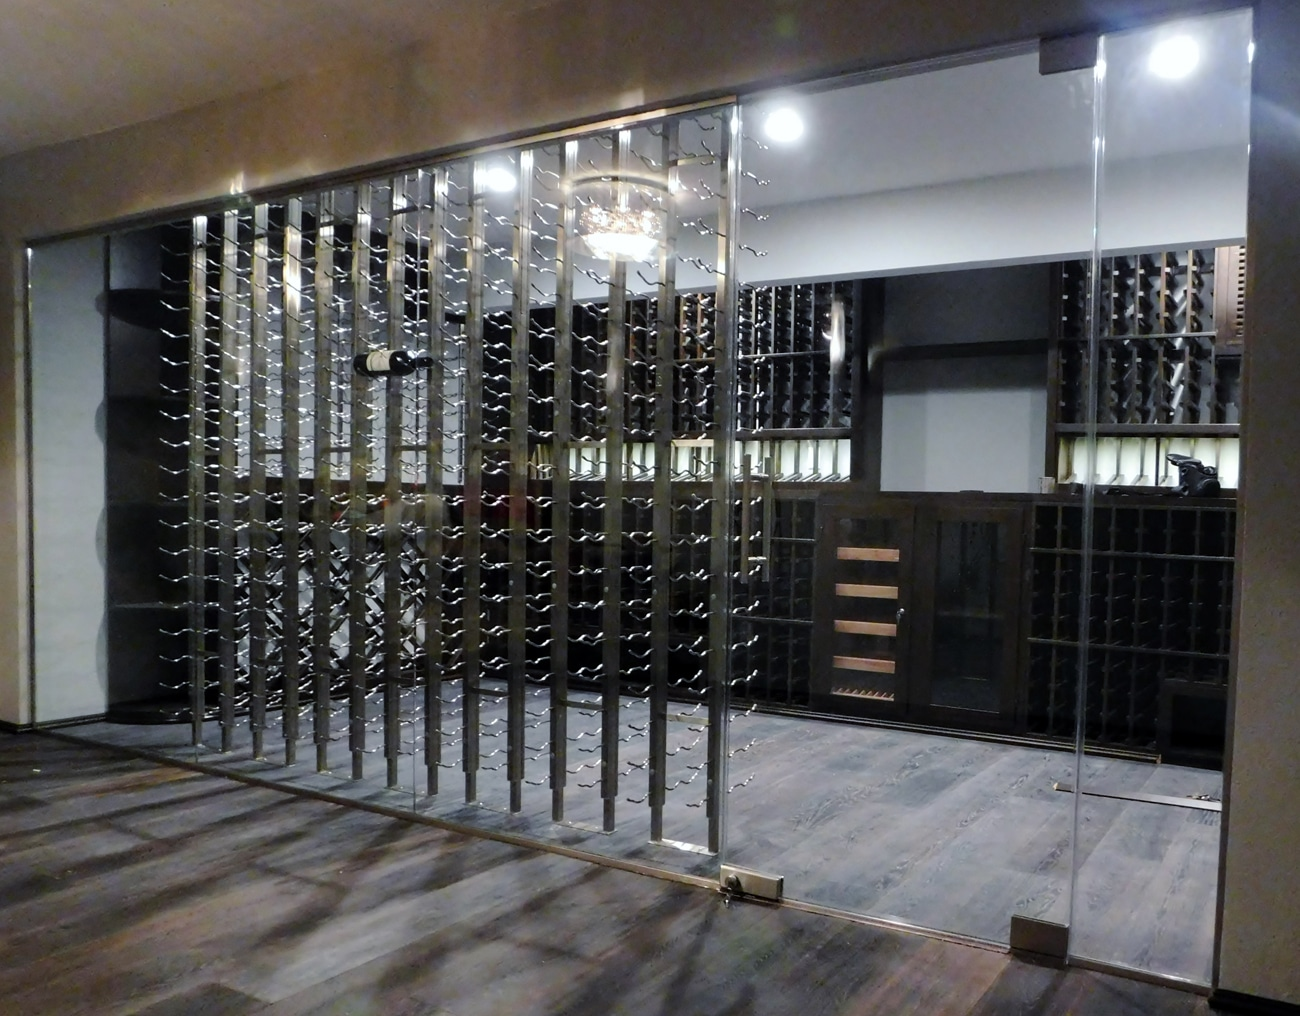 This design idea is now a 2,055 bottle wine cellar tasting and cigar room 1300p